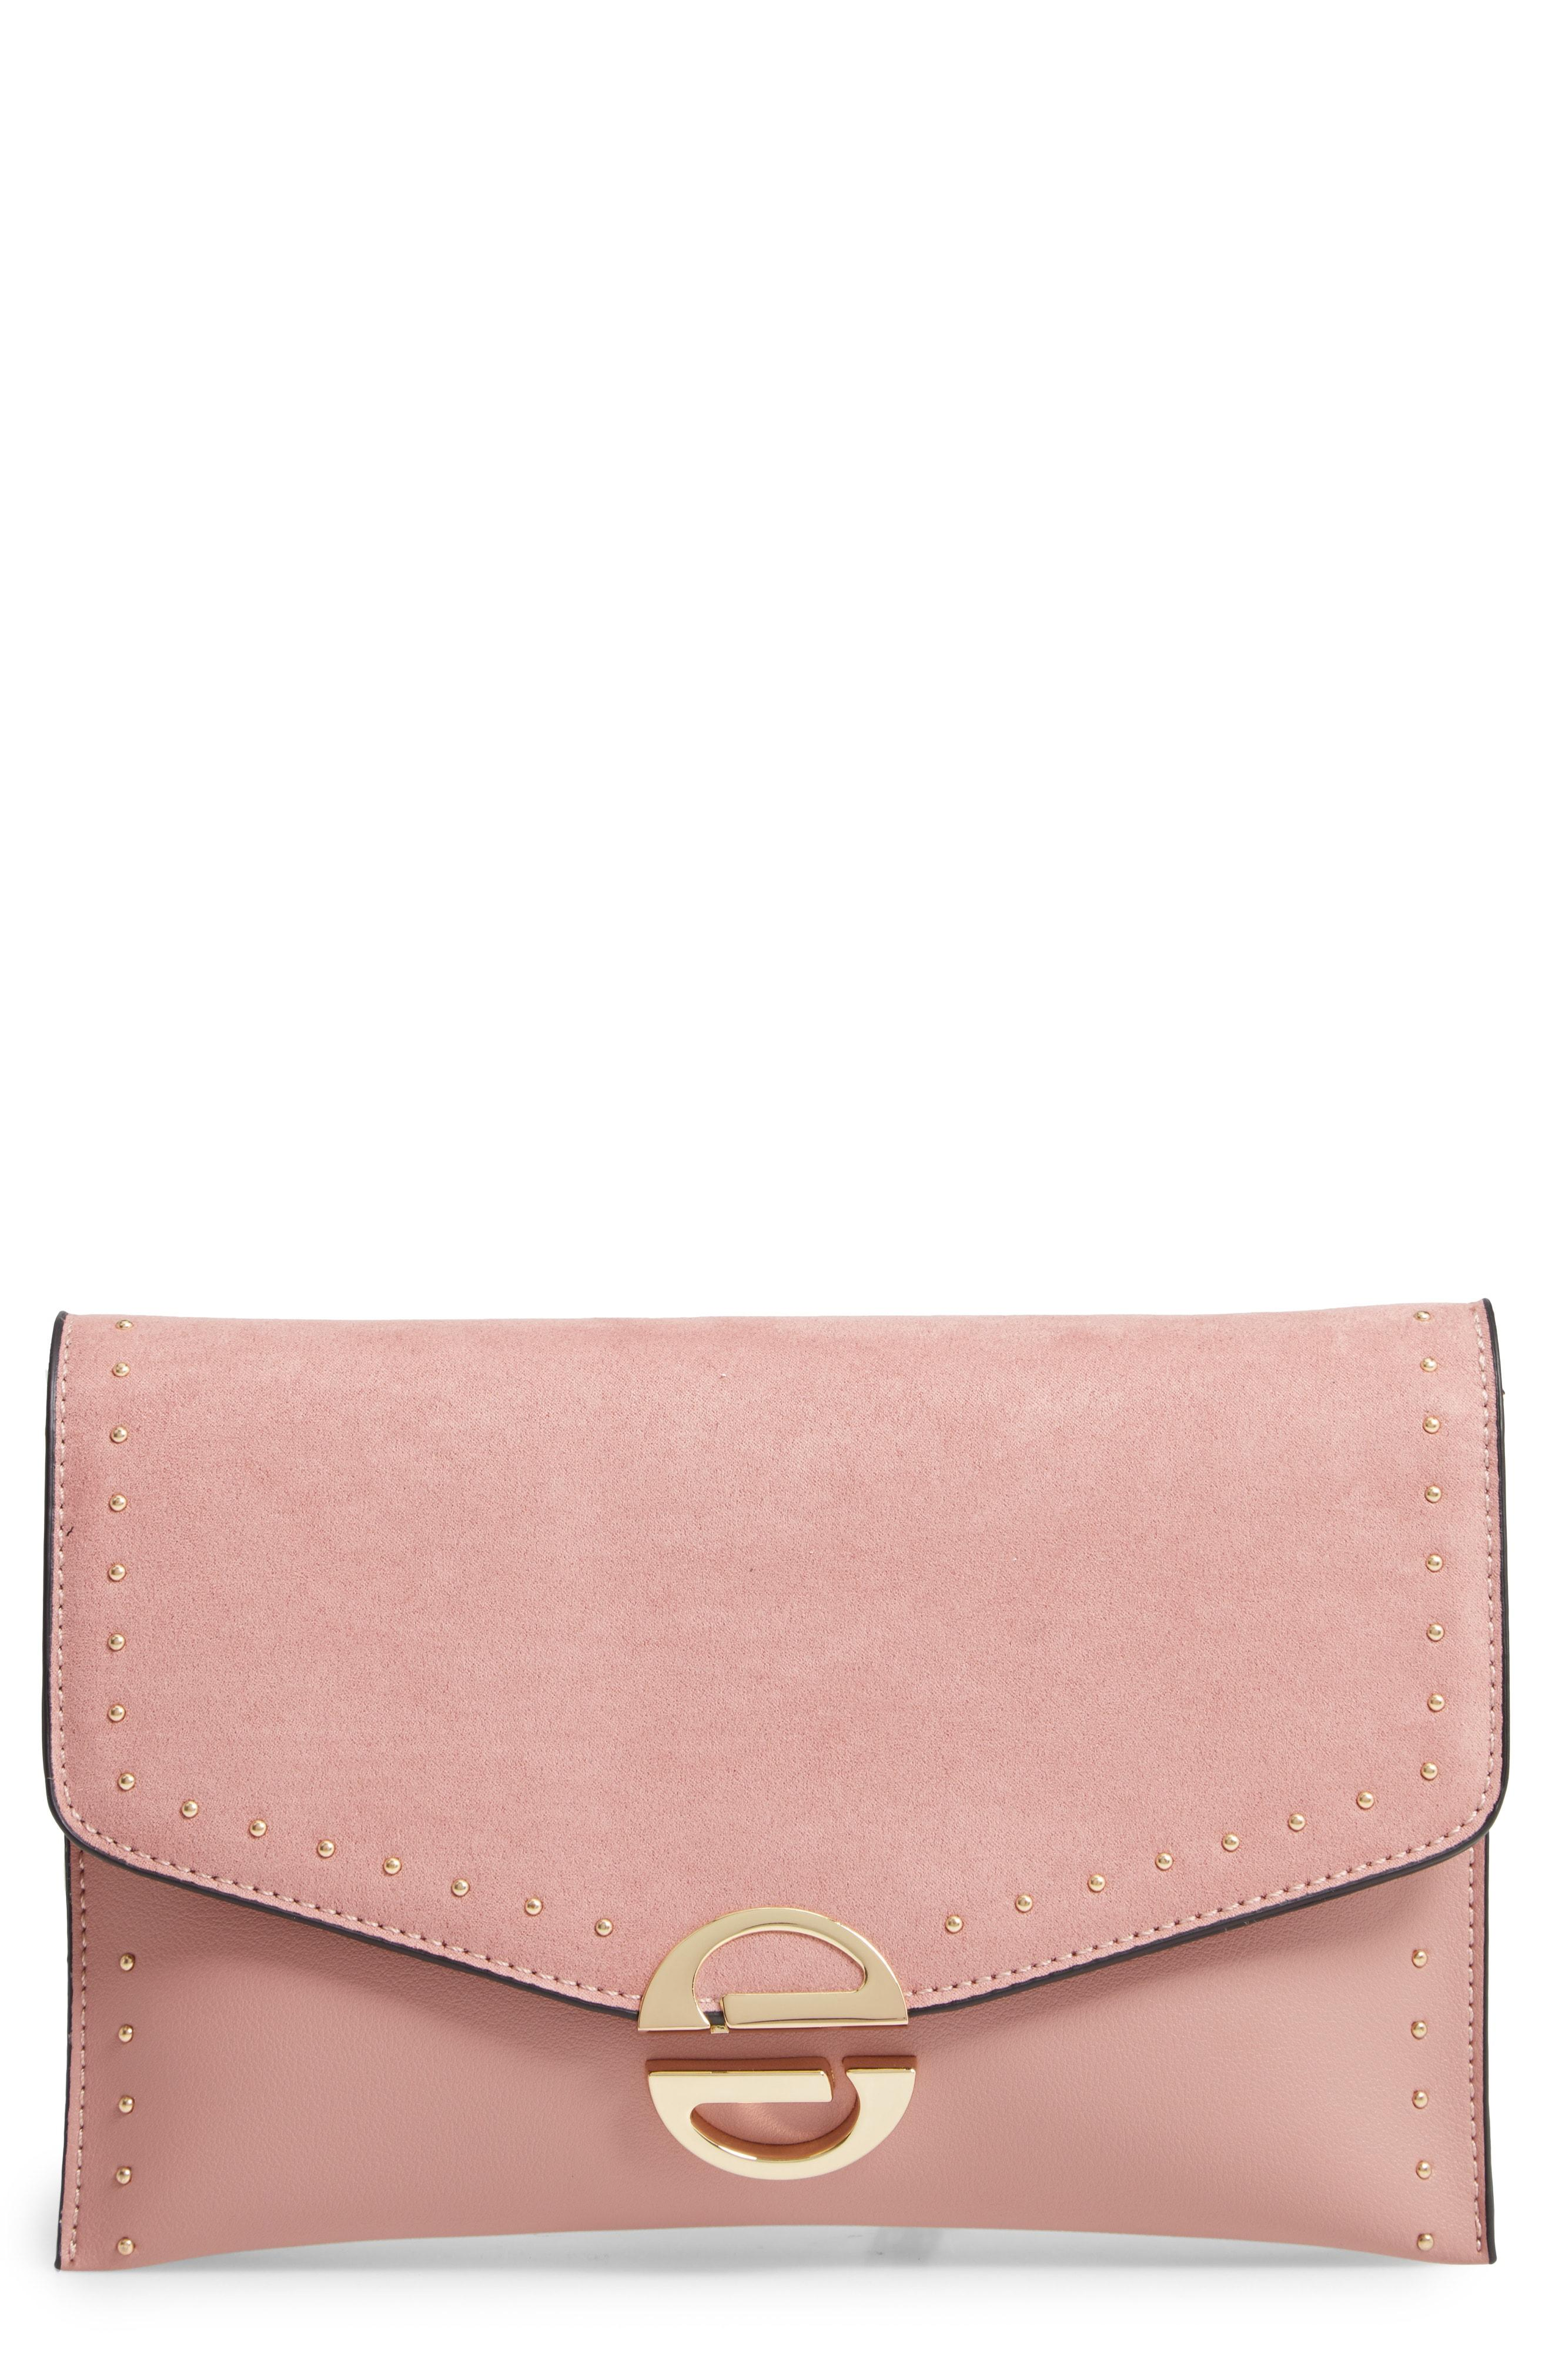 Lyst - TOPSHOP Candice Studded Faux Leather Clutch - in Pink c38c18bc6c003